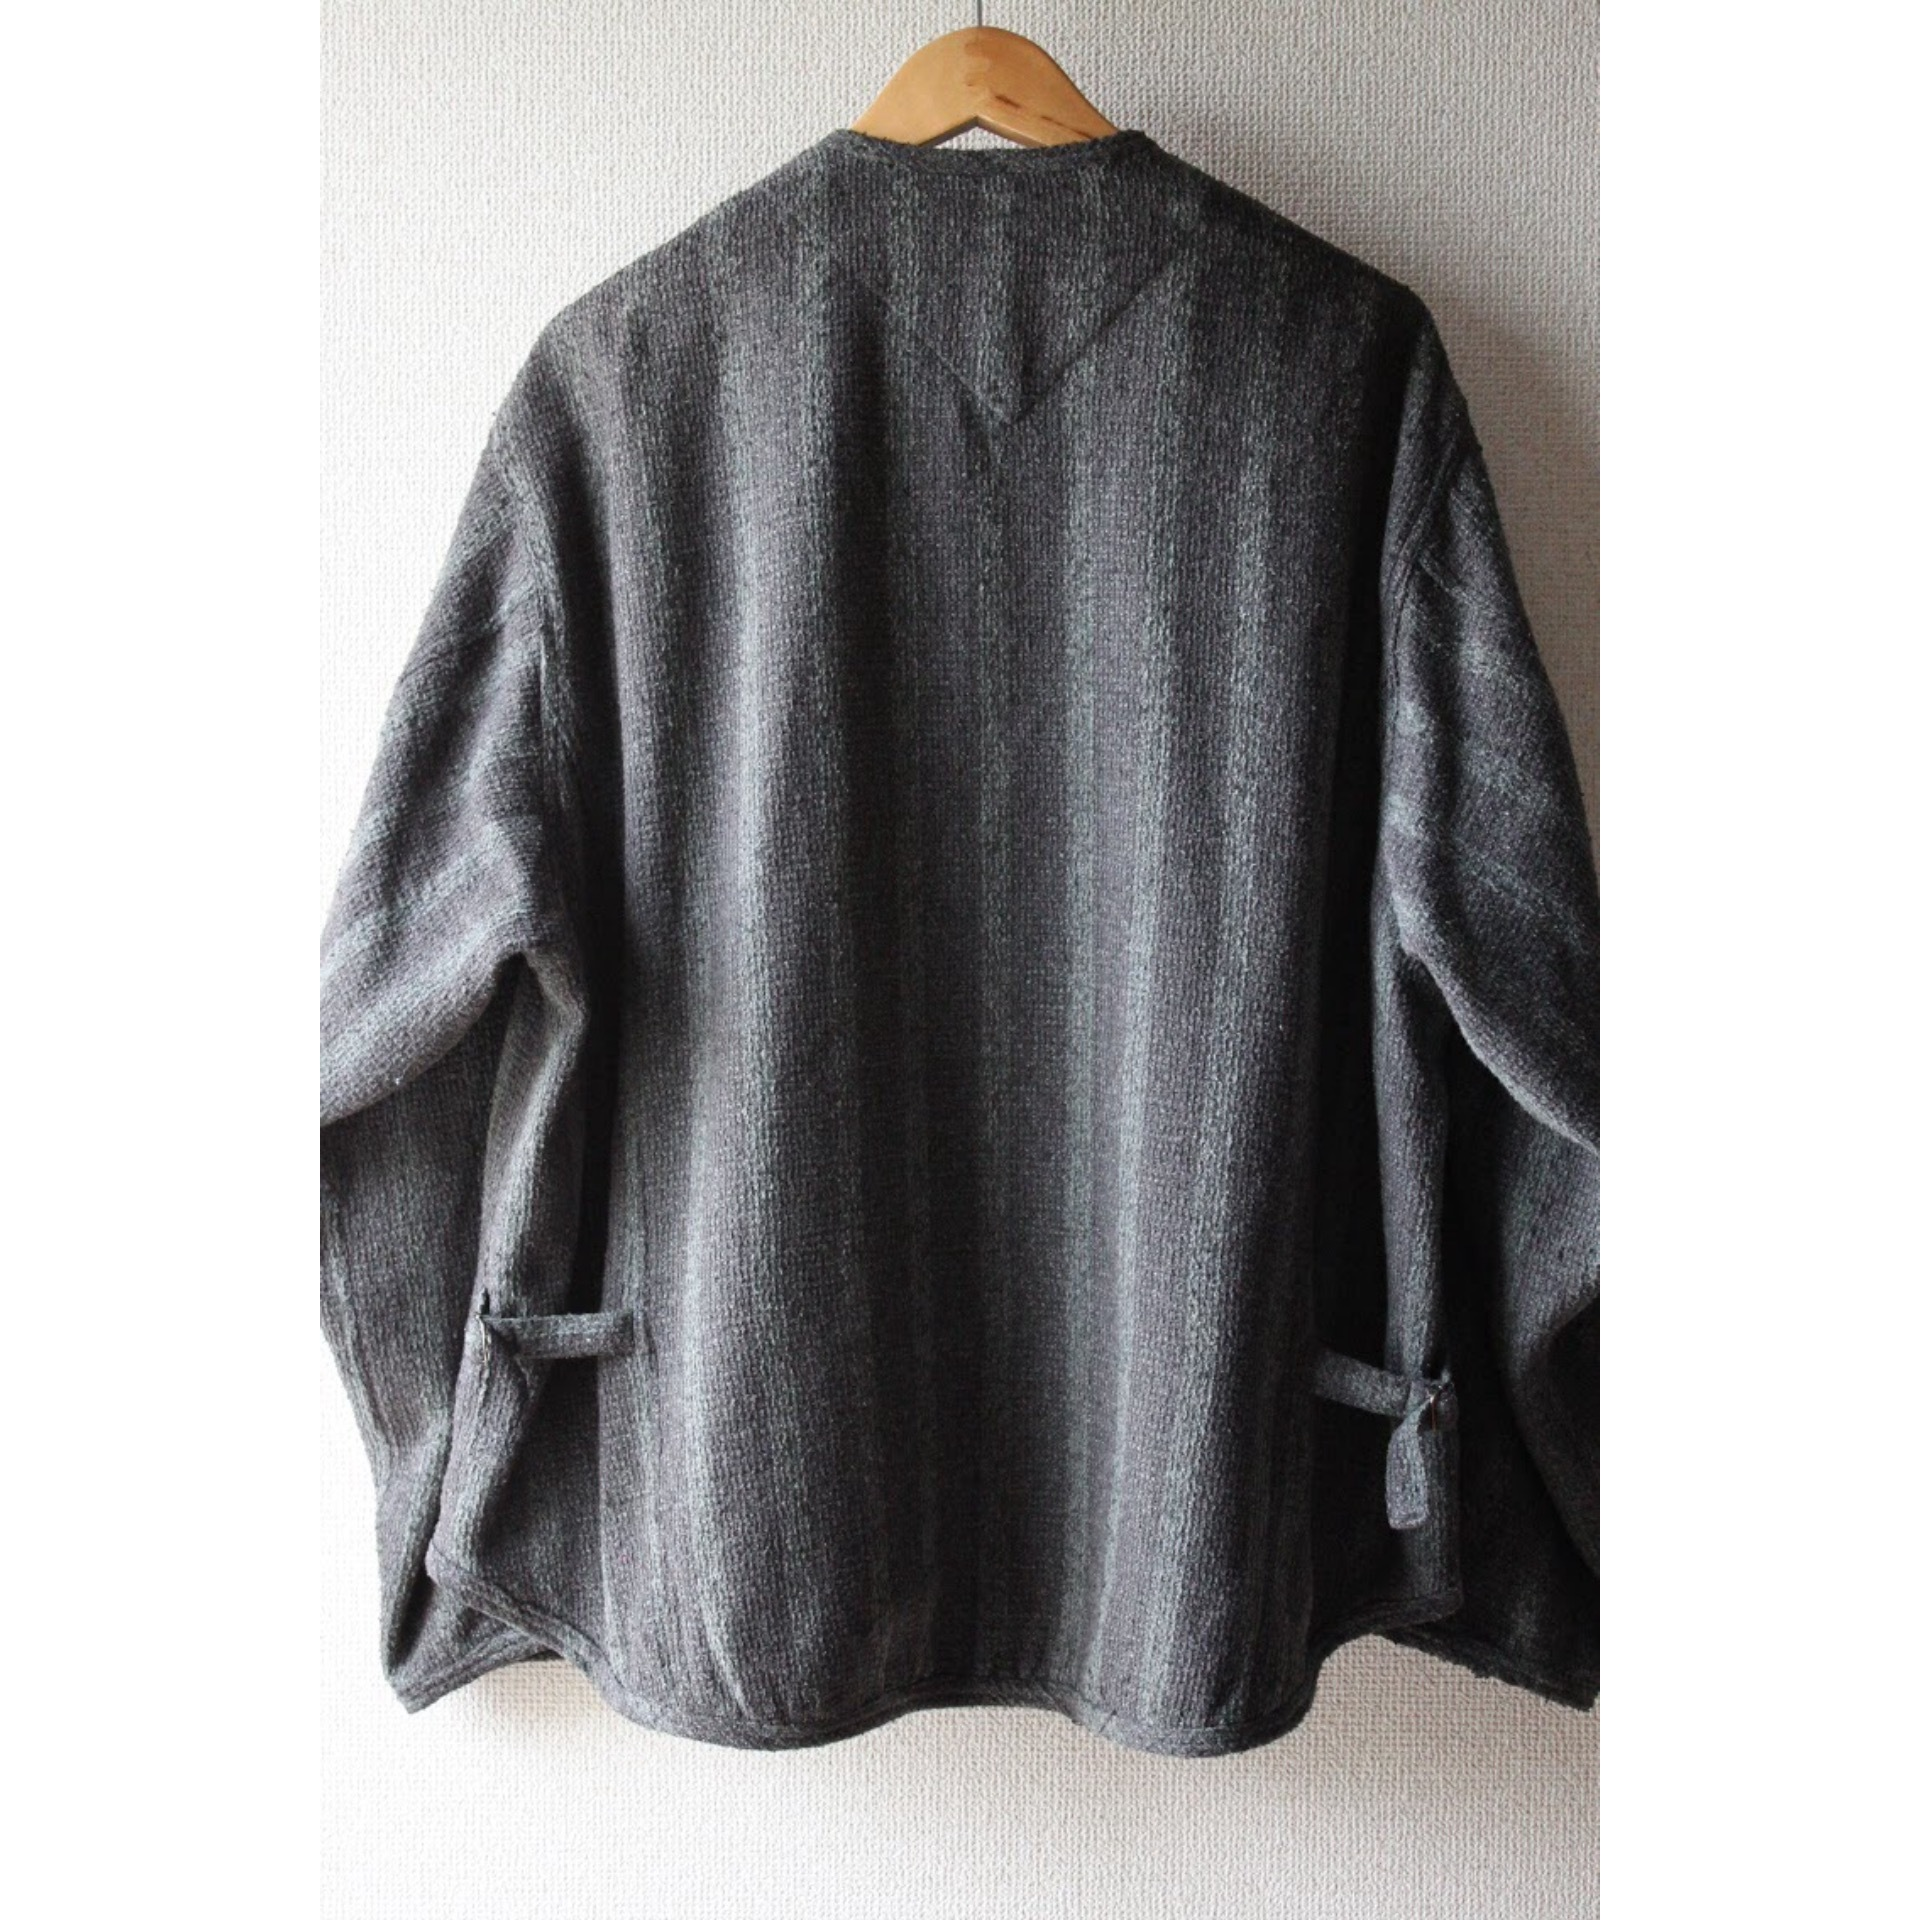 Vintage no collar jacket